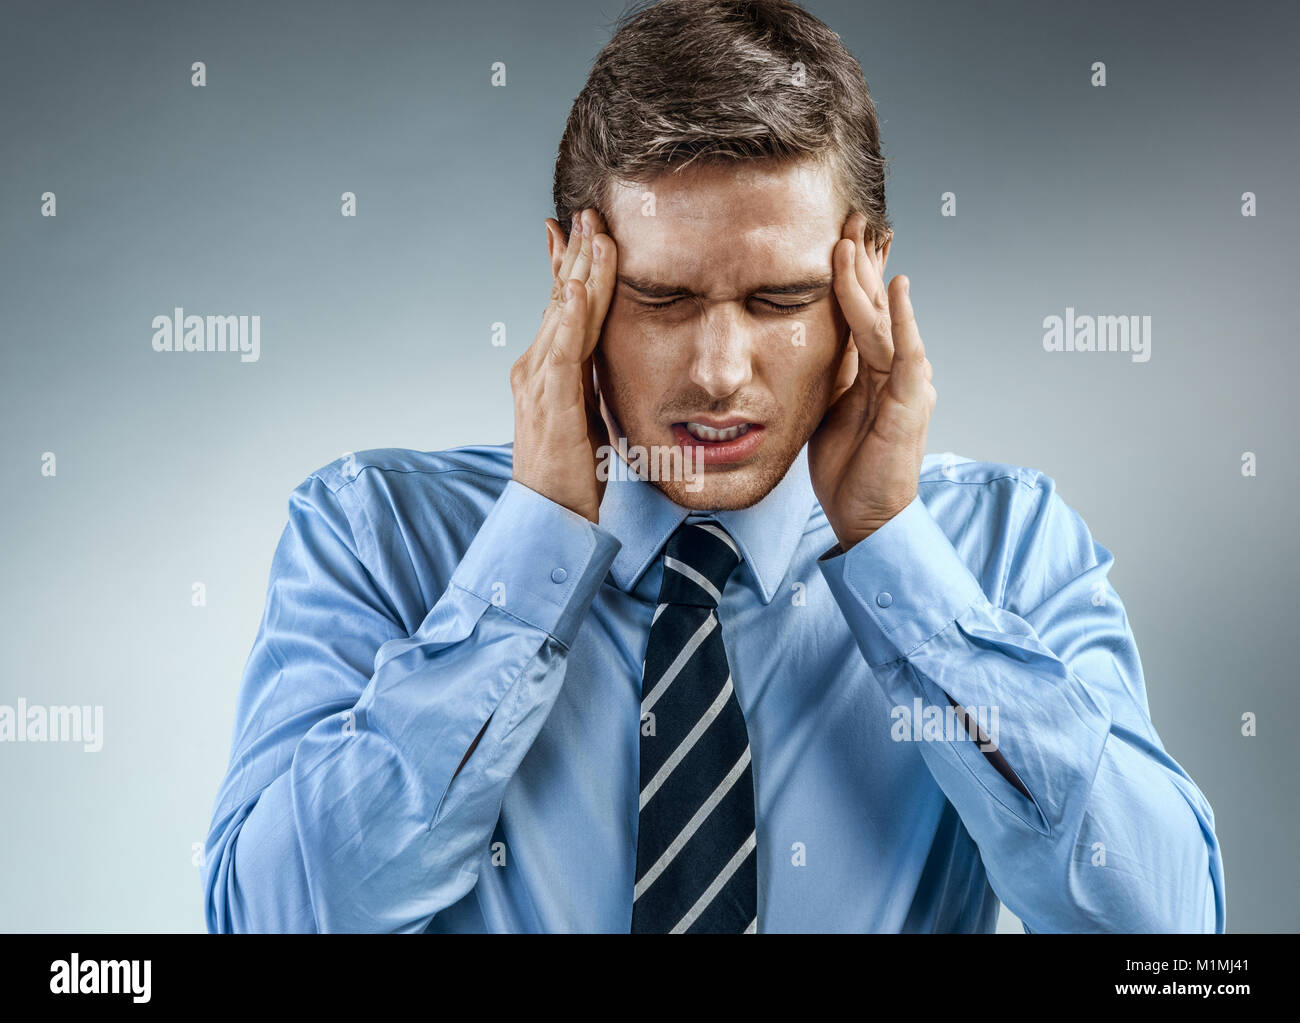 Young businessman with pain in his temples. Photo of man suffering from stress or a headache grimacing in pain. - Stock Image